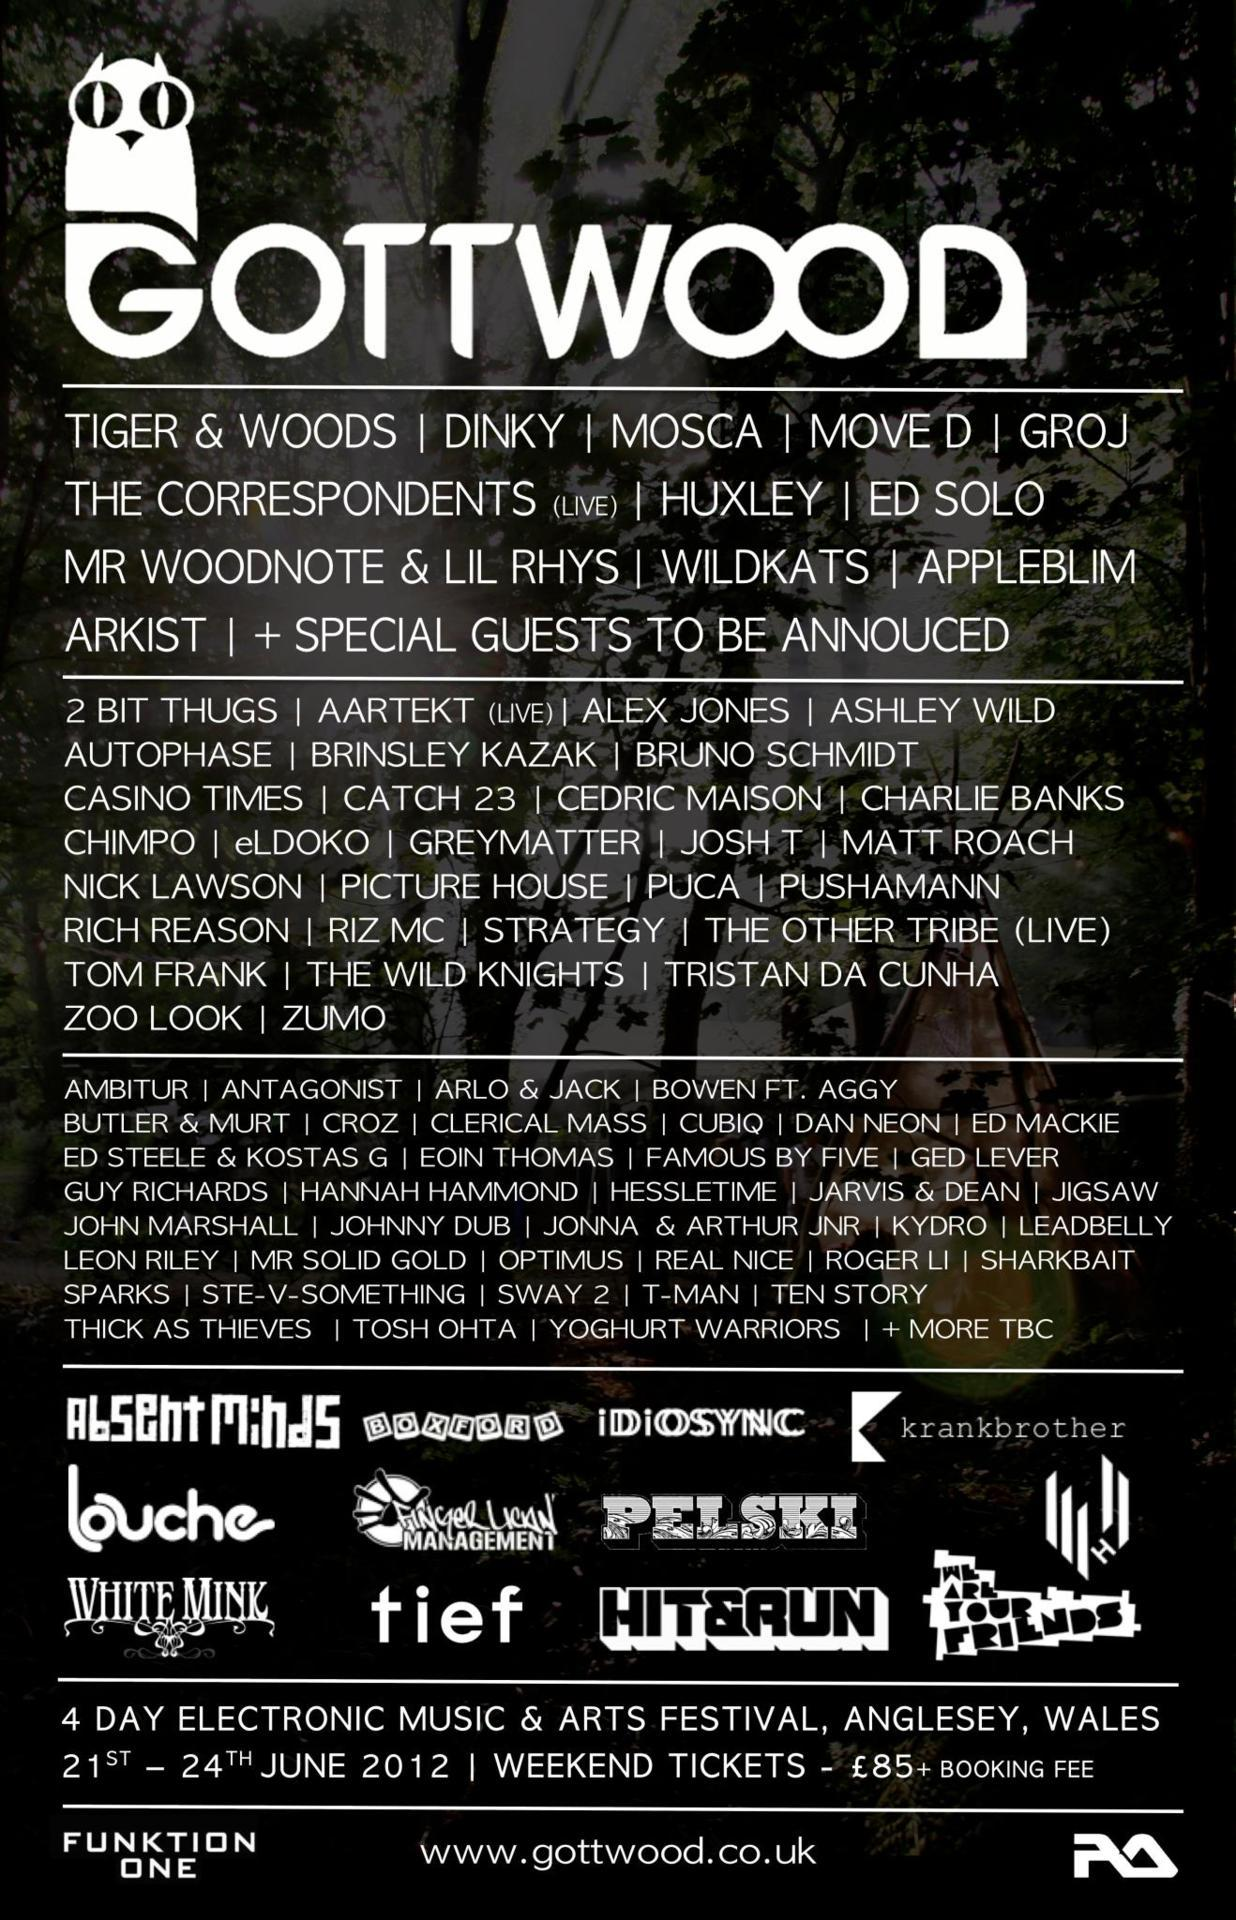 GOTTWOOD FESTIVAL! BEST FESTIVAL OF MY YEAR. Here is the line up! YEAHH MUN.